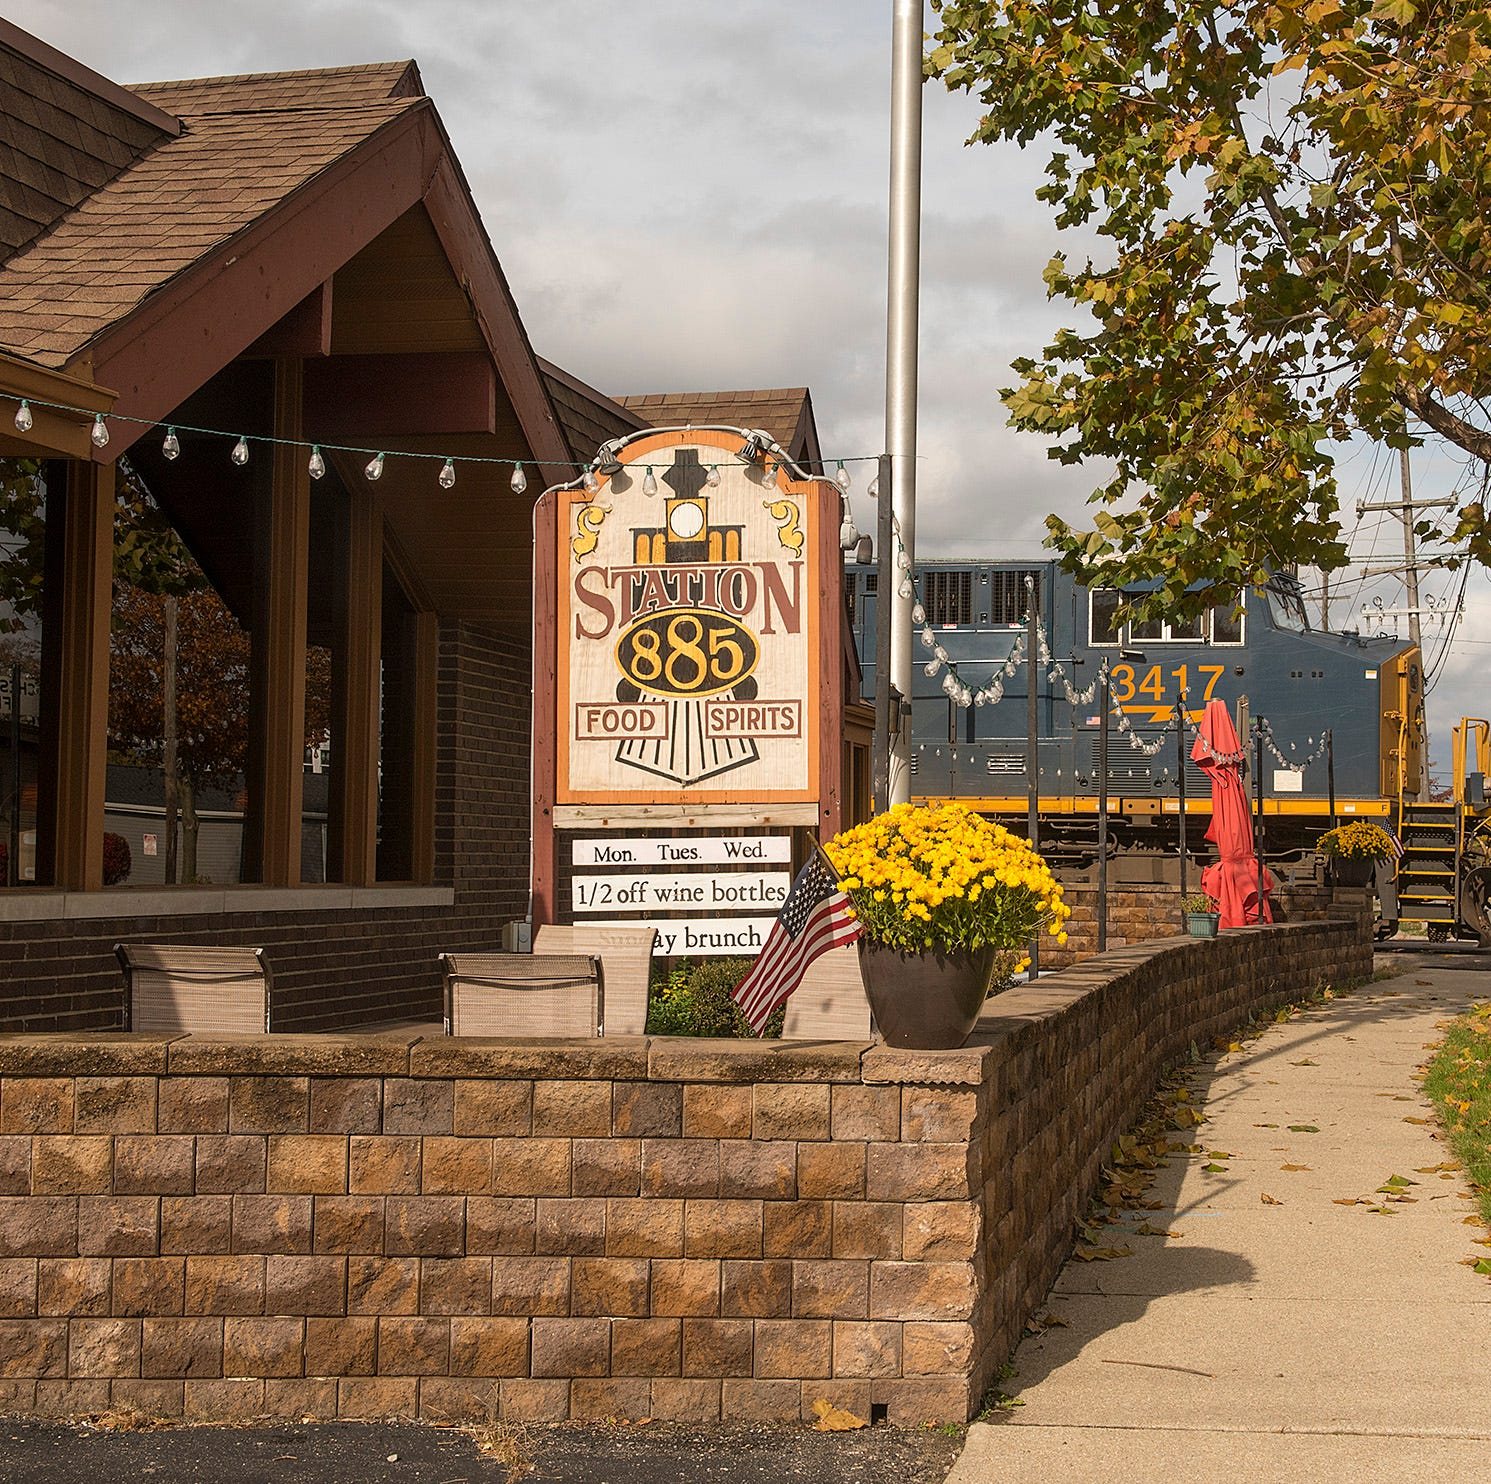 Stella's Black Dog Tavern moving to Station 885 site as owners create new concept